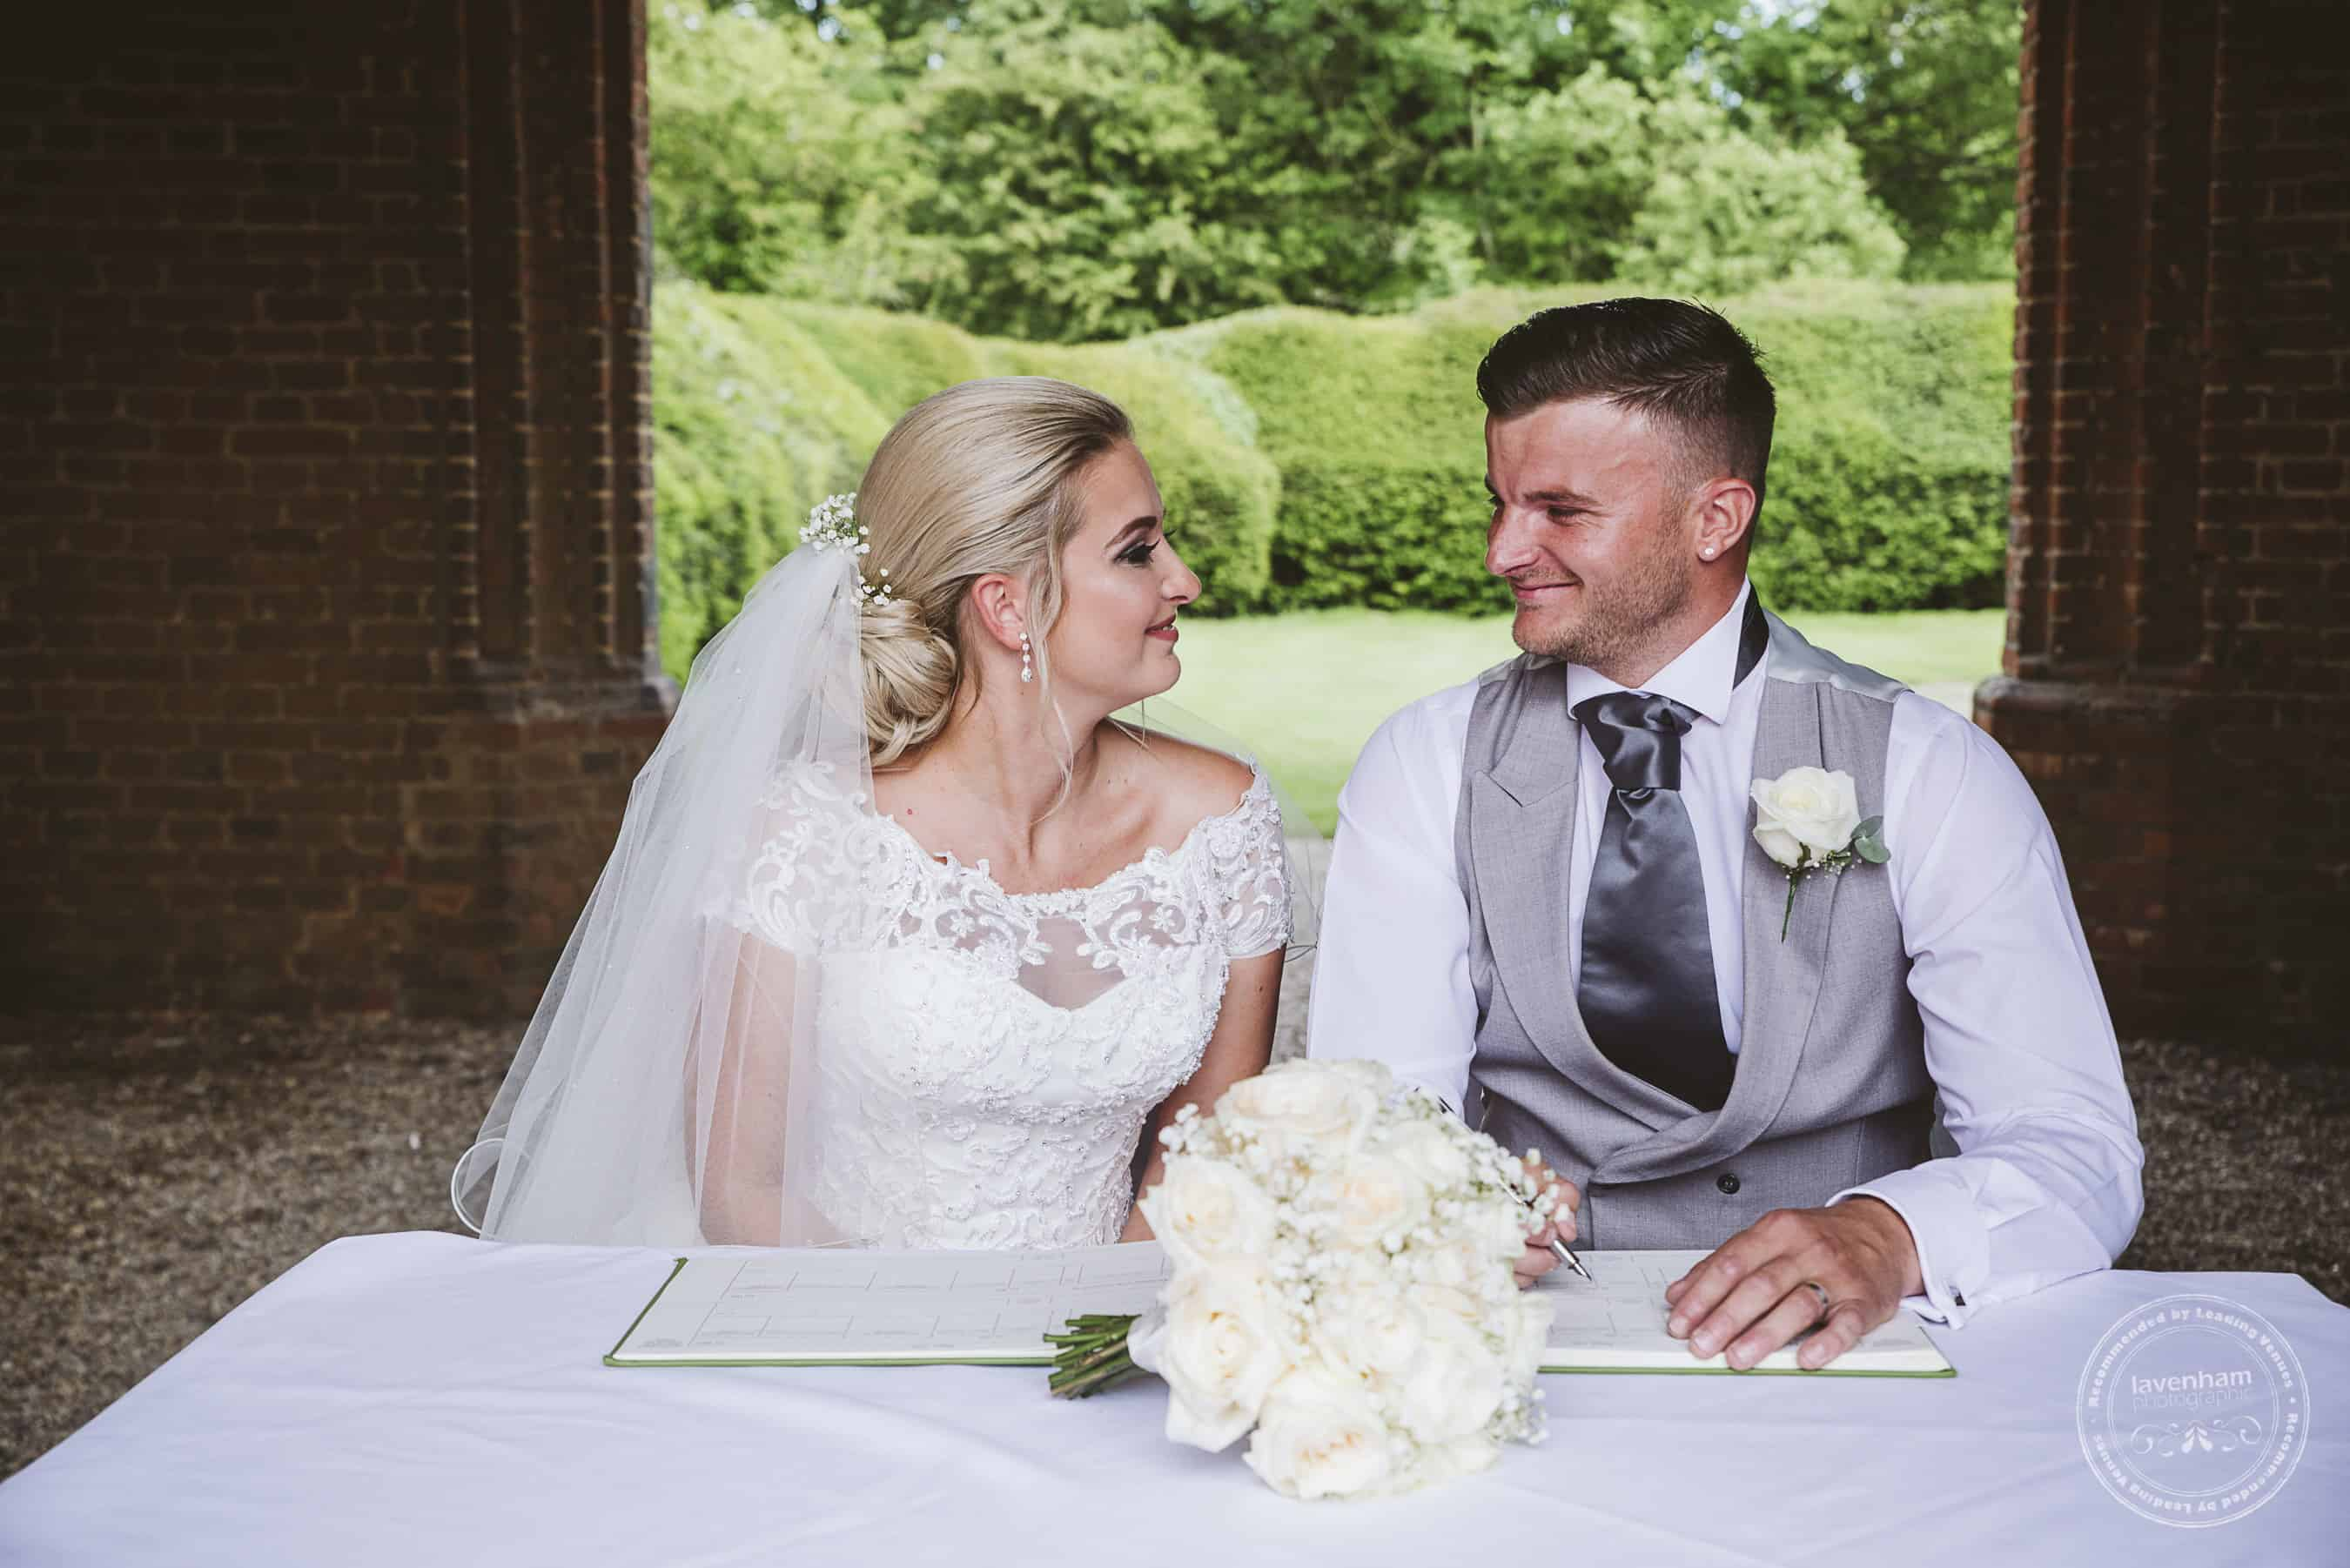 030618 Leez Priory Wedding Photography Lavenham Photographic 042